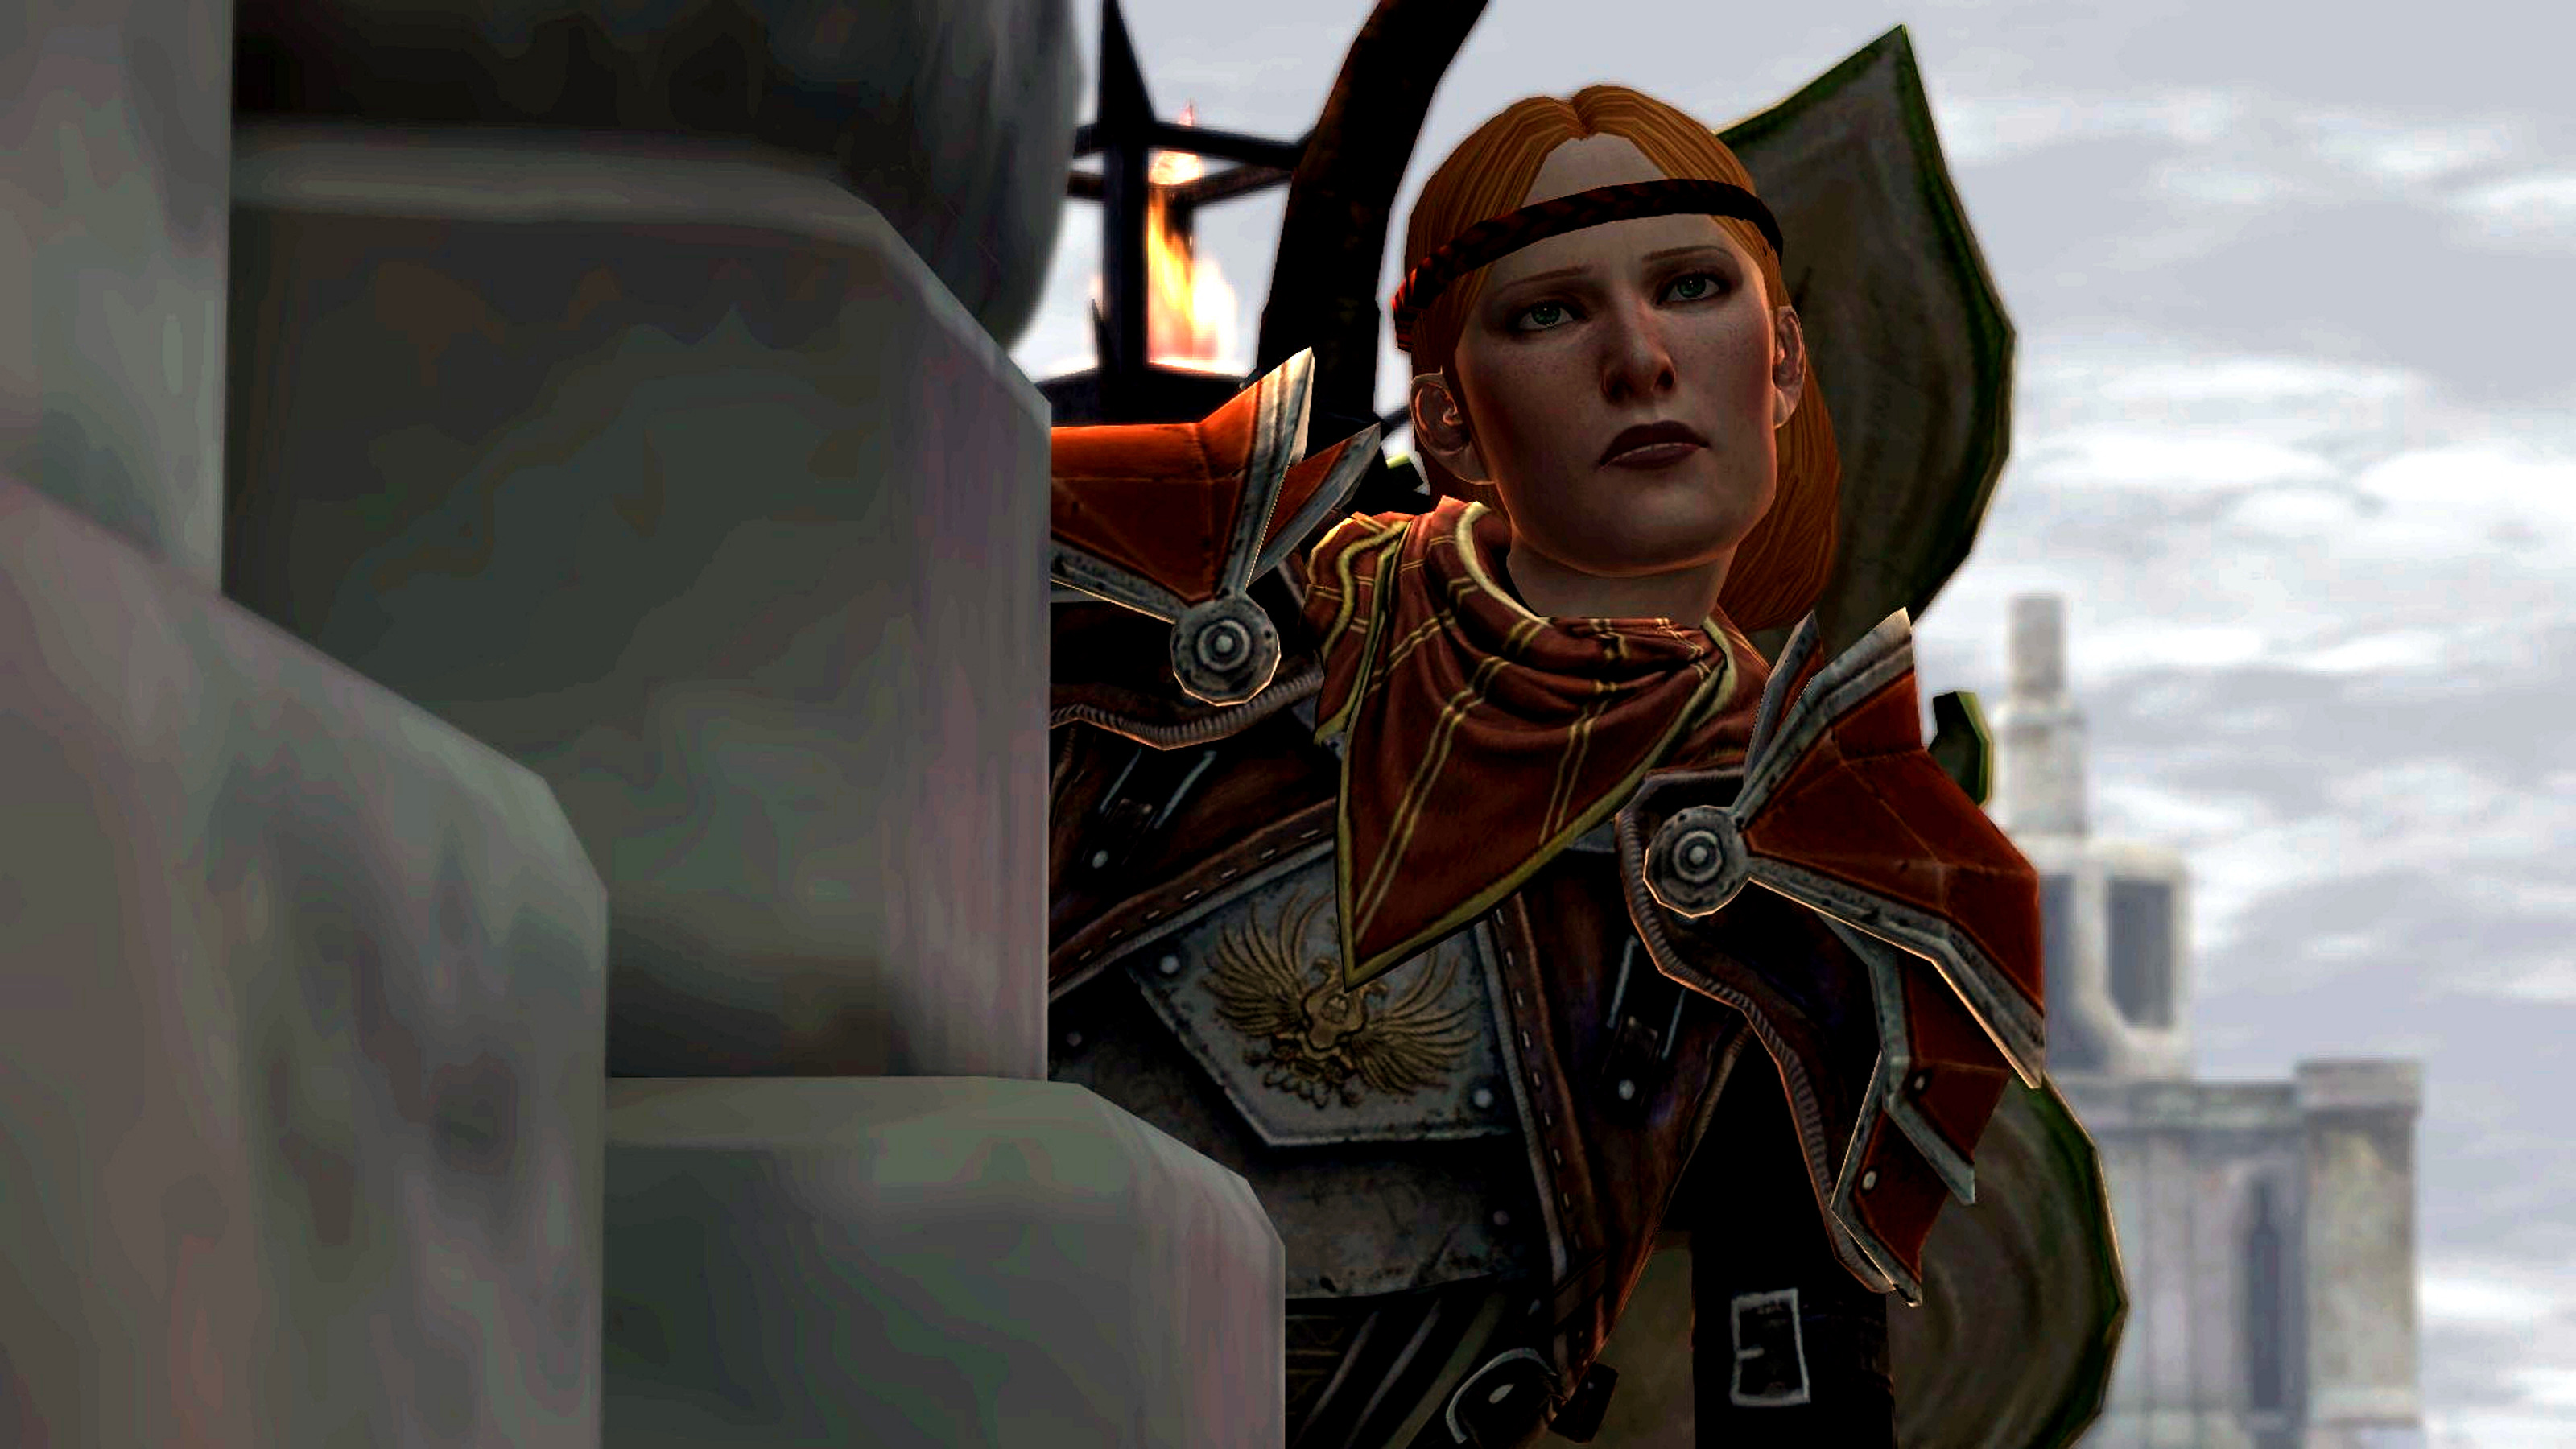 Dragon age inquisition dating after divorce